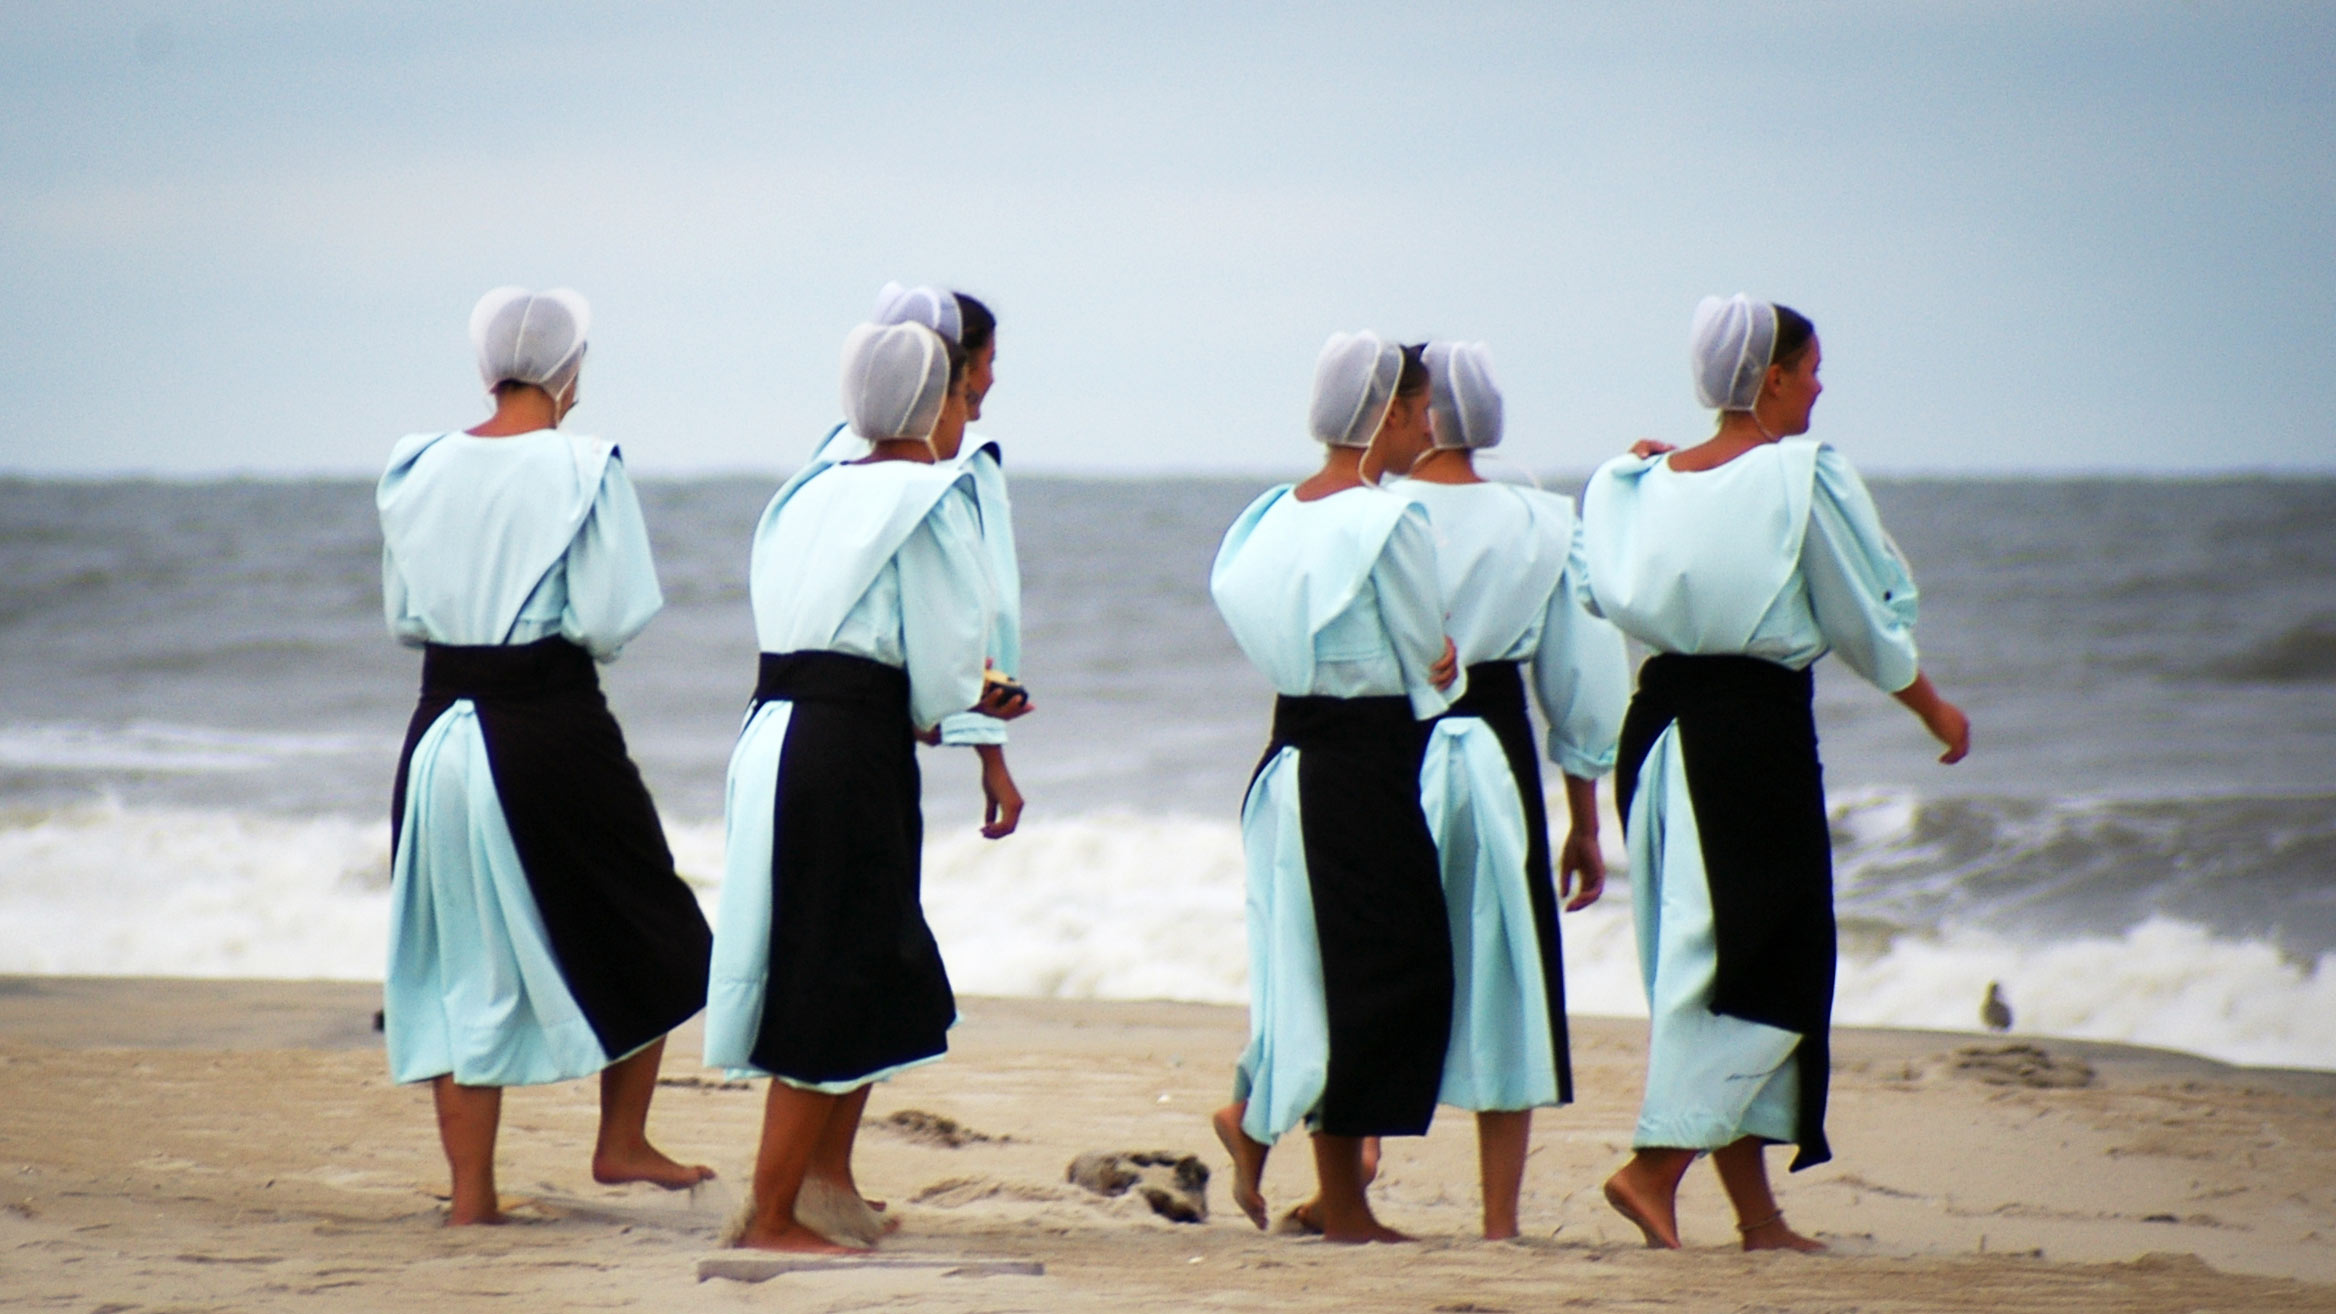 Amish women at the beach in Chincoteague, Virginia. Photo by Pasteur/Wikipedia.